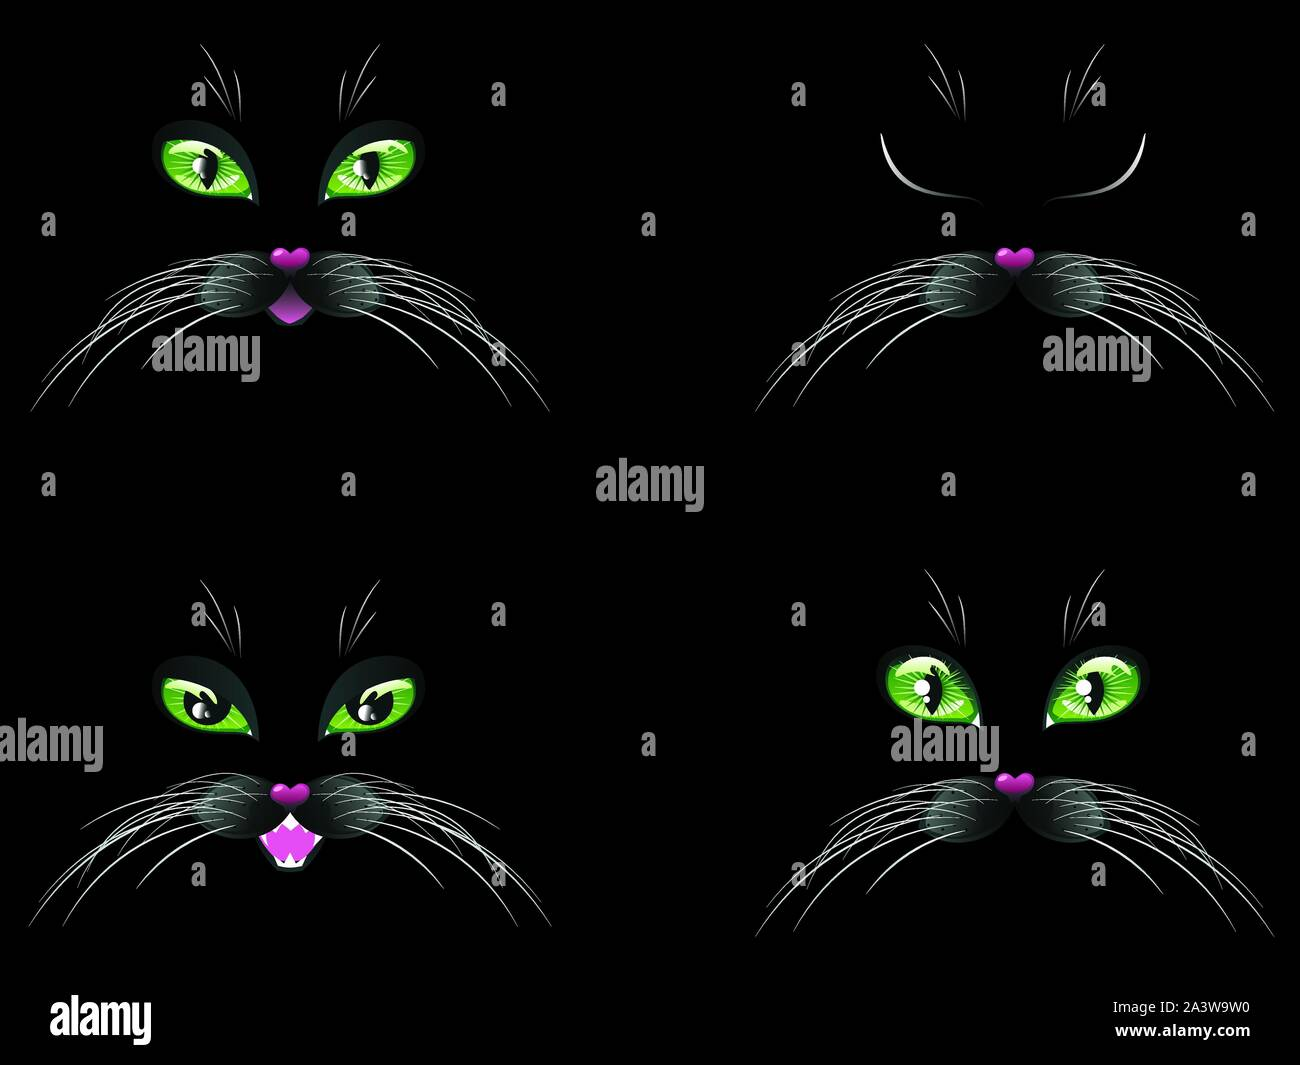 Cute Cartoon Black Cat Face With Stylized Green Eyes Stock Vector